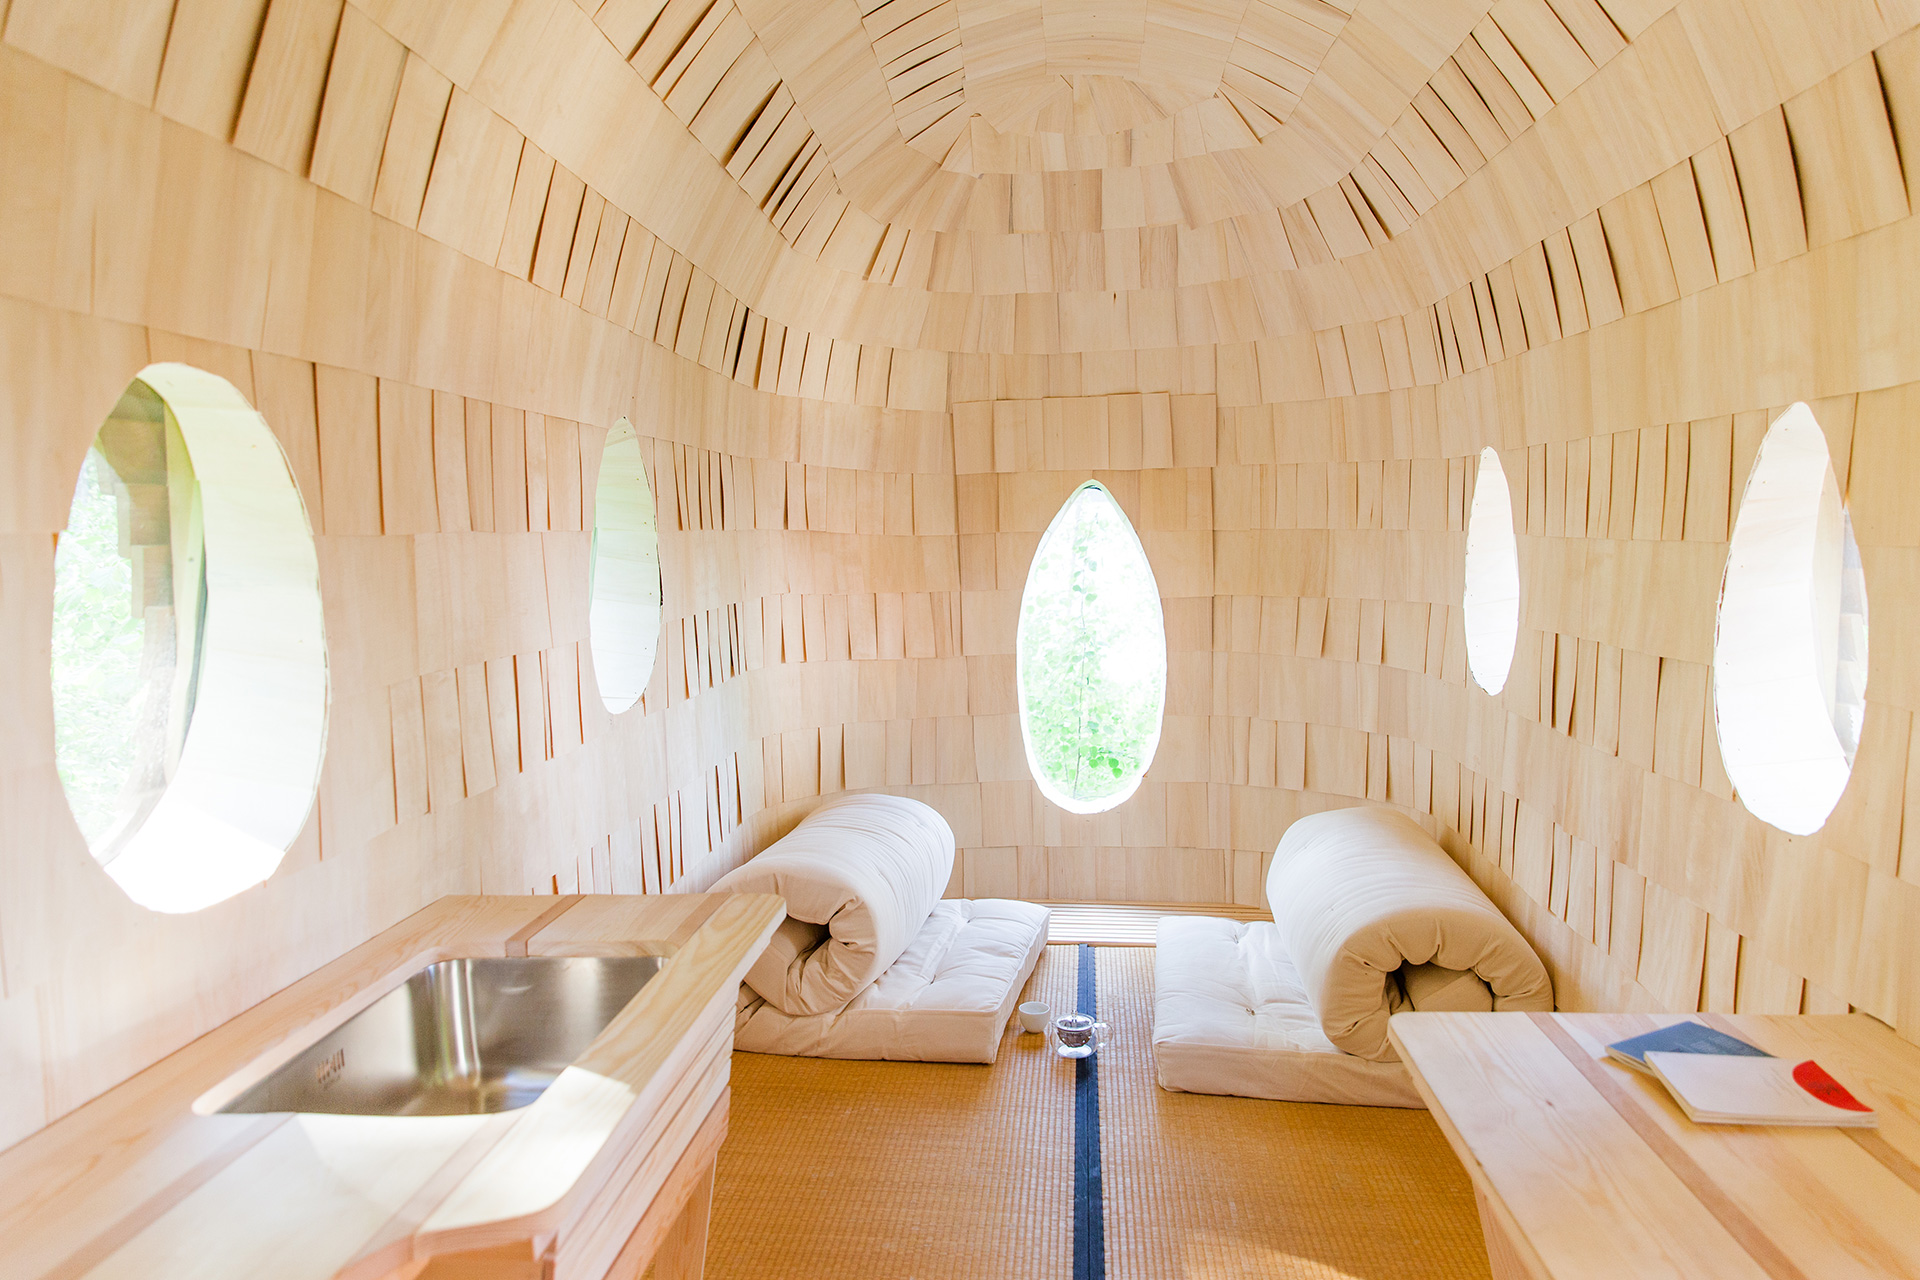 Inside the Luomokoti by Finnish civil engineer Toni Goltz | Diversity in living, a changing lifestyle| STIRworld